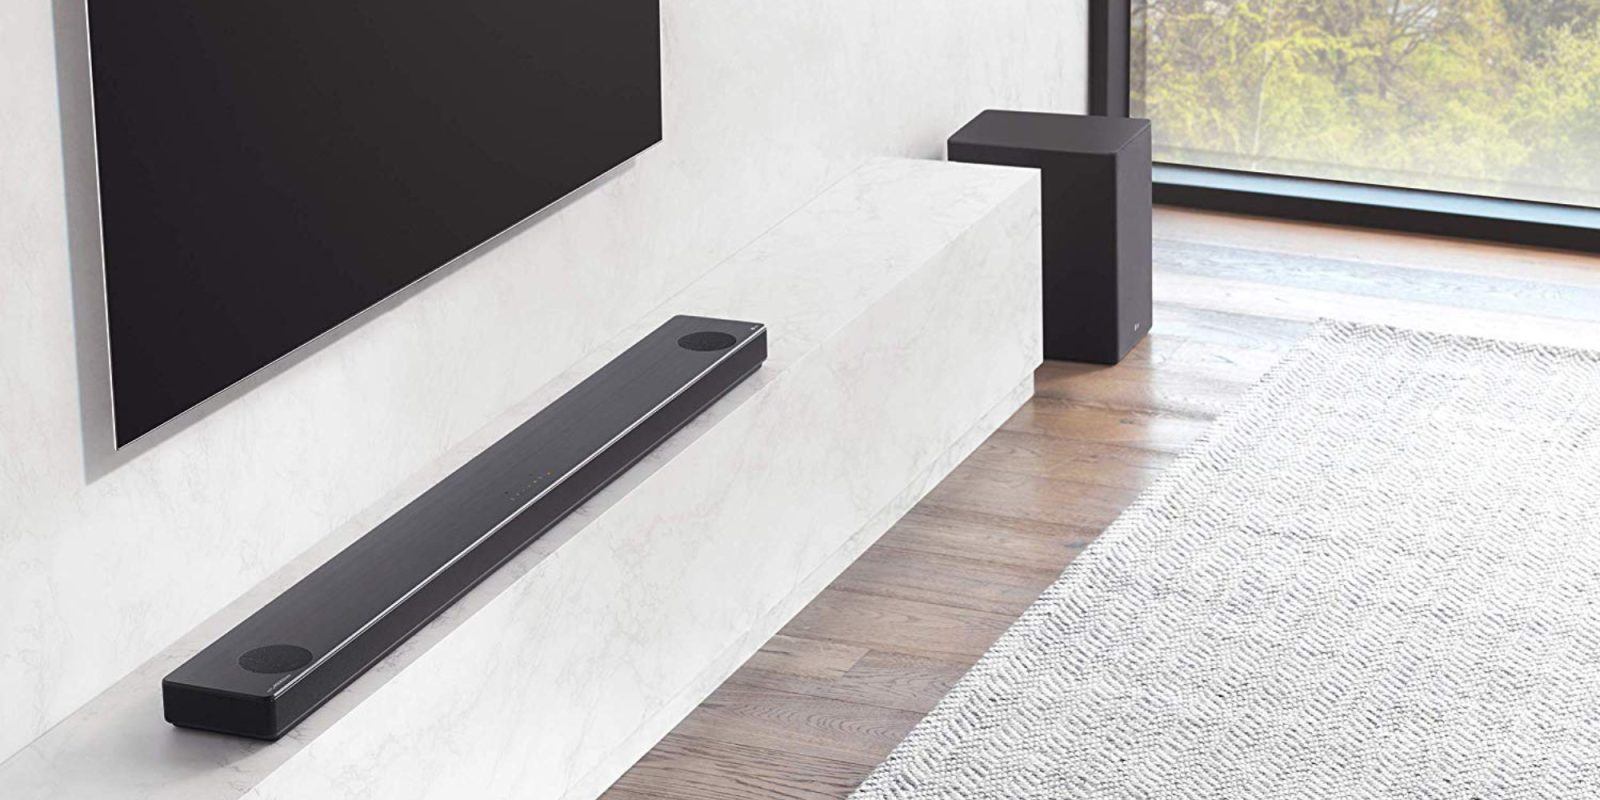 LG's high-end 5.1.2-Ch. Sound Bar has Atmos, Assistant, more: $475 (Save $520)